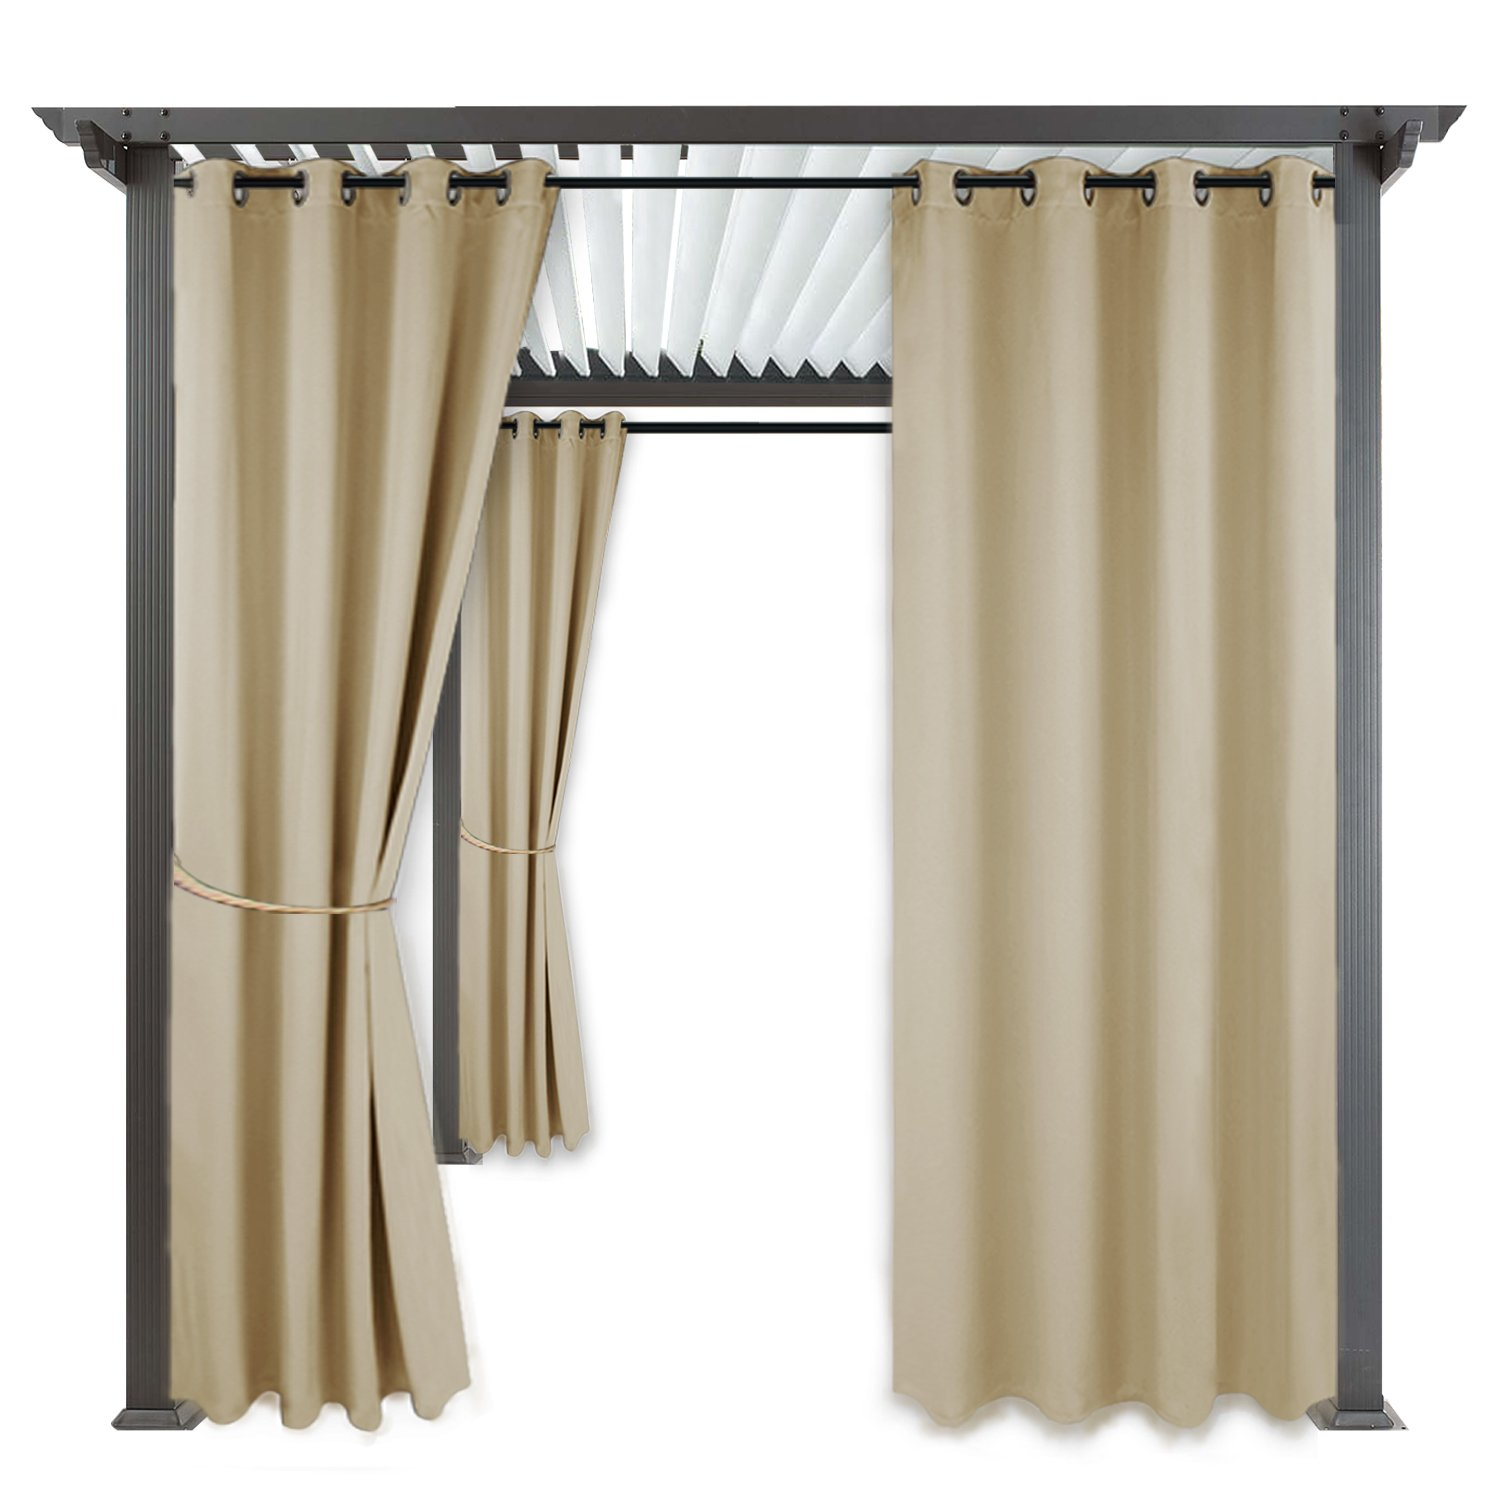 RYB HOME Outdoor Curtain Shades - Blackout Curtain Blind Indoor Outdoor Décor Top Grommet Rust Proof Water & Wind Repellent for Patio/Gazebo / Deck, 1 Panel, Width 52'' x Length 84'', Cream Beige